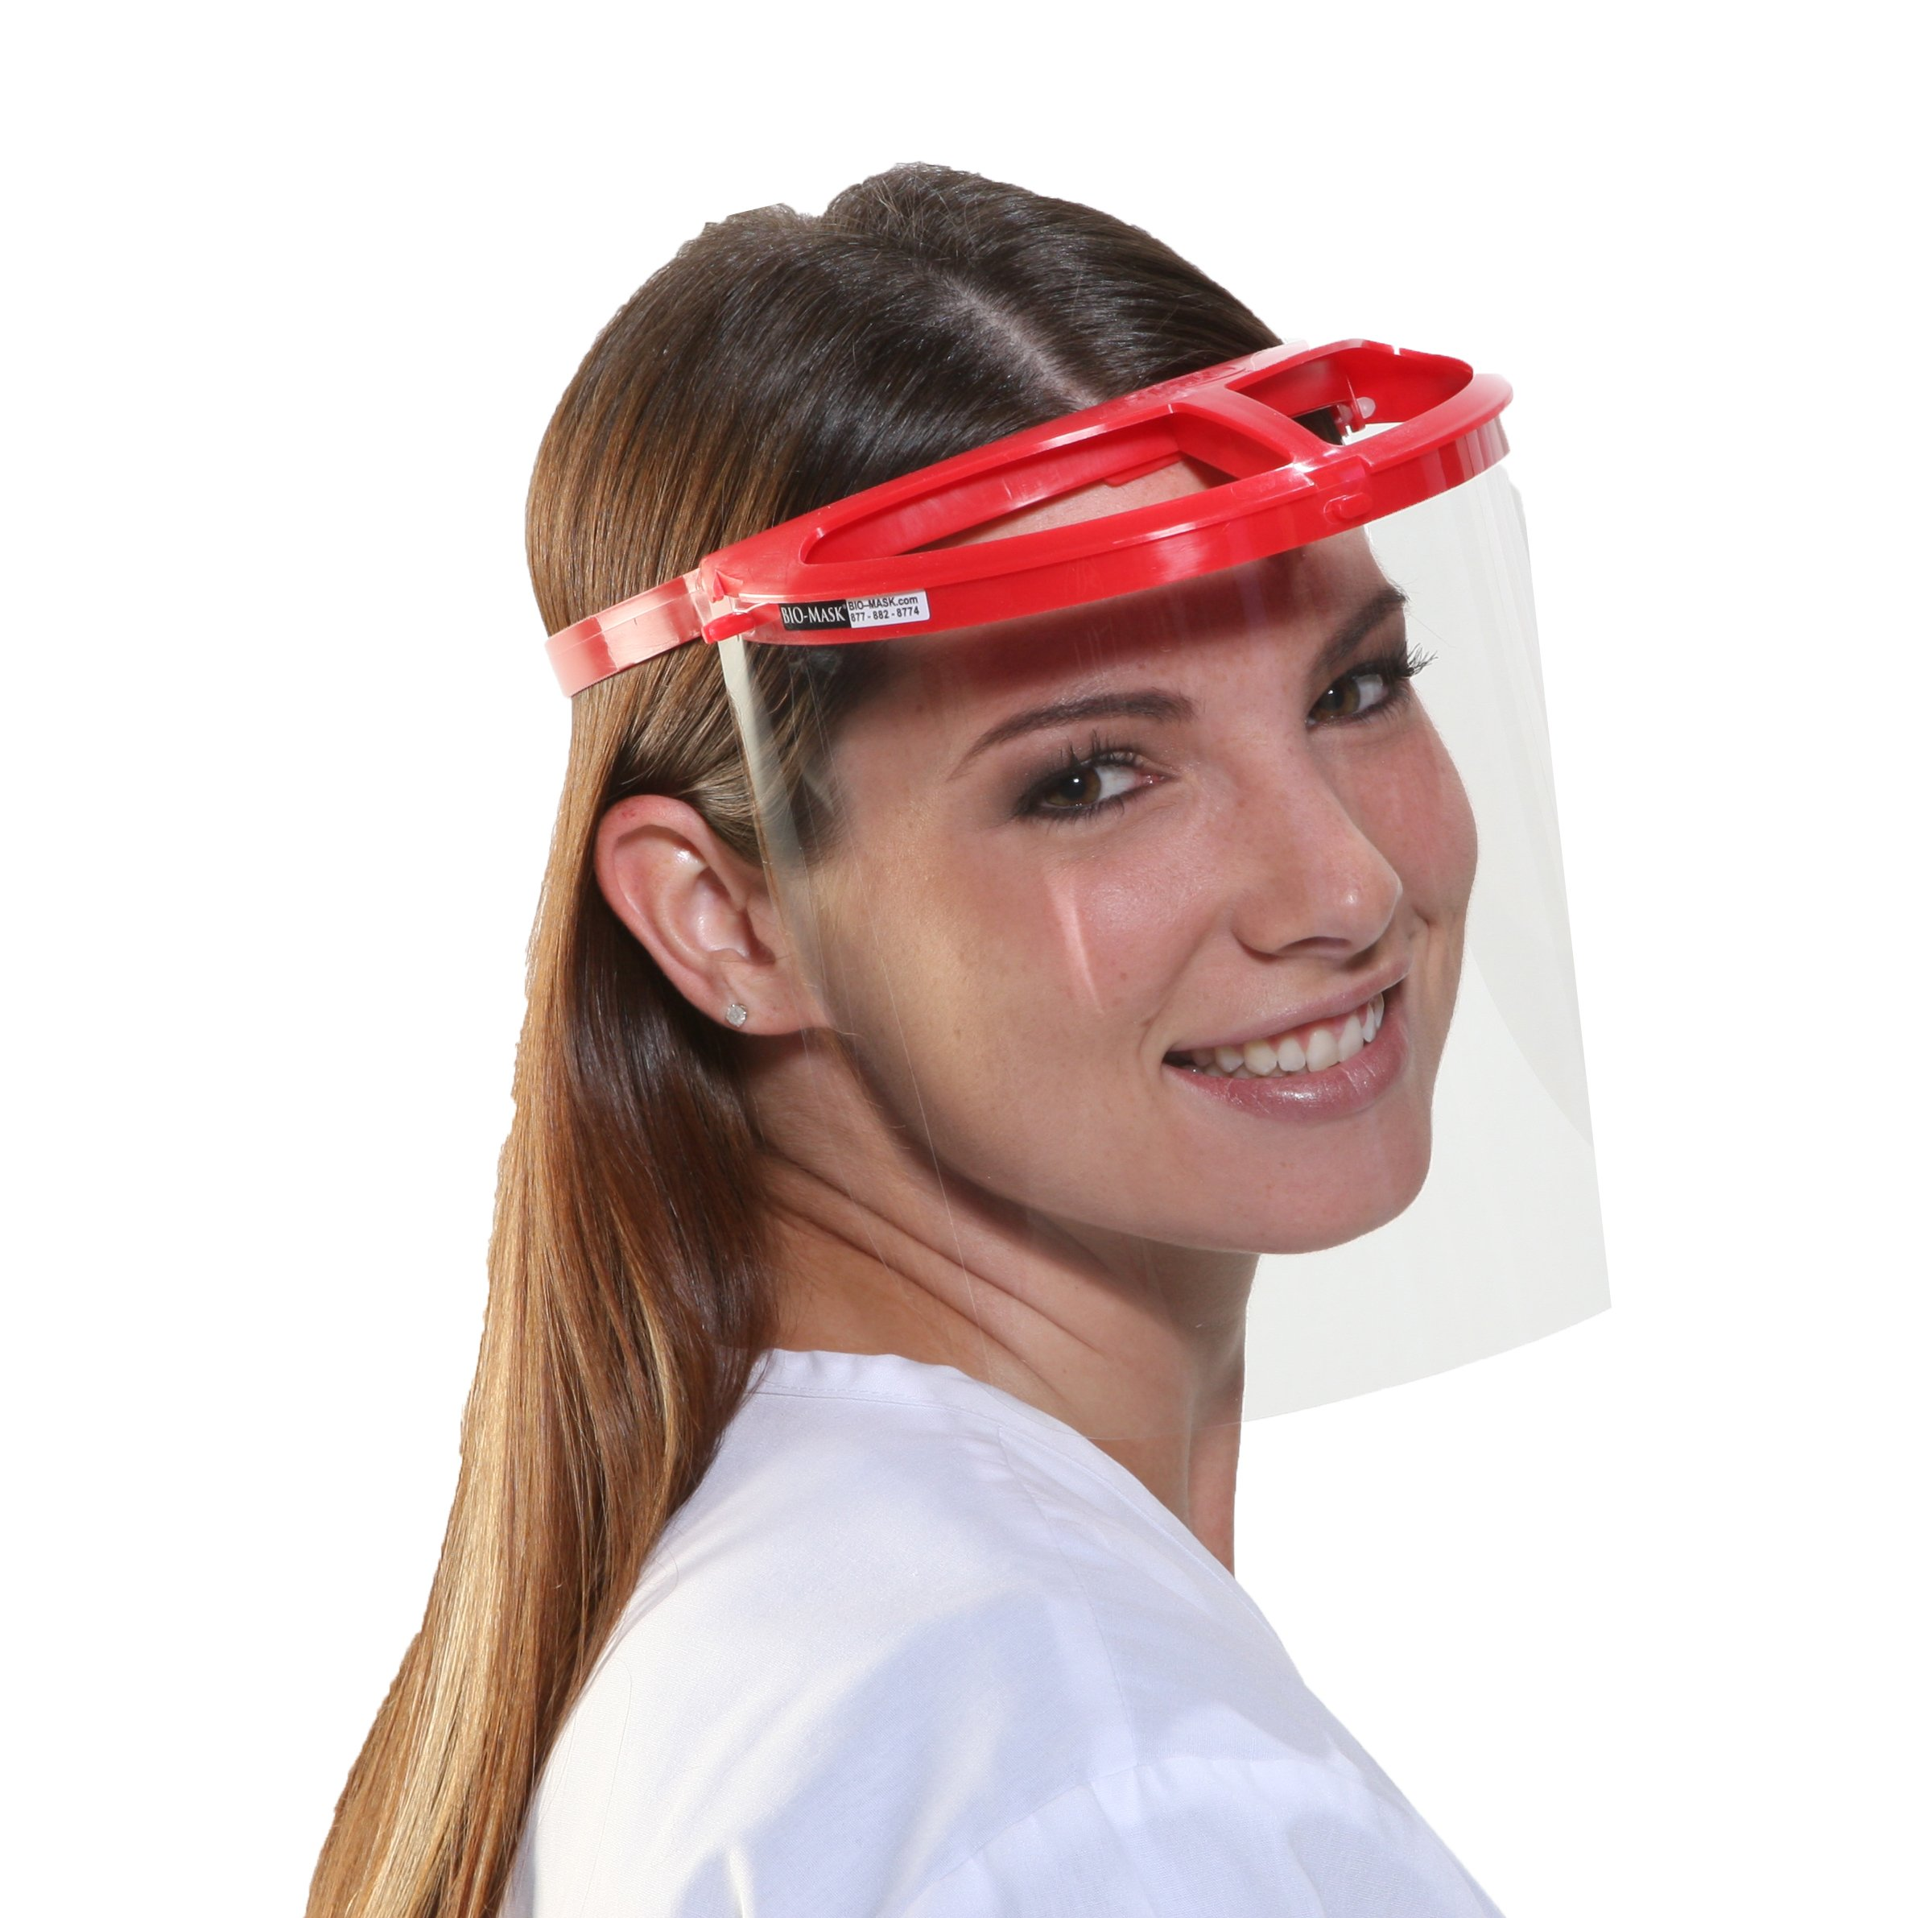 Bio-Mask Face Shield With 10 Shields (Red) by Bio-Mask